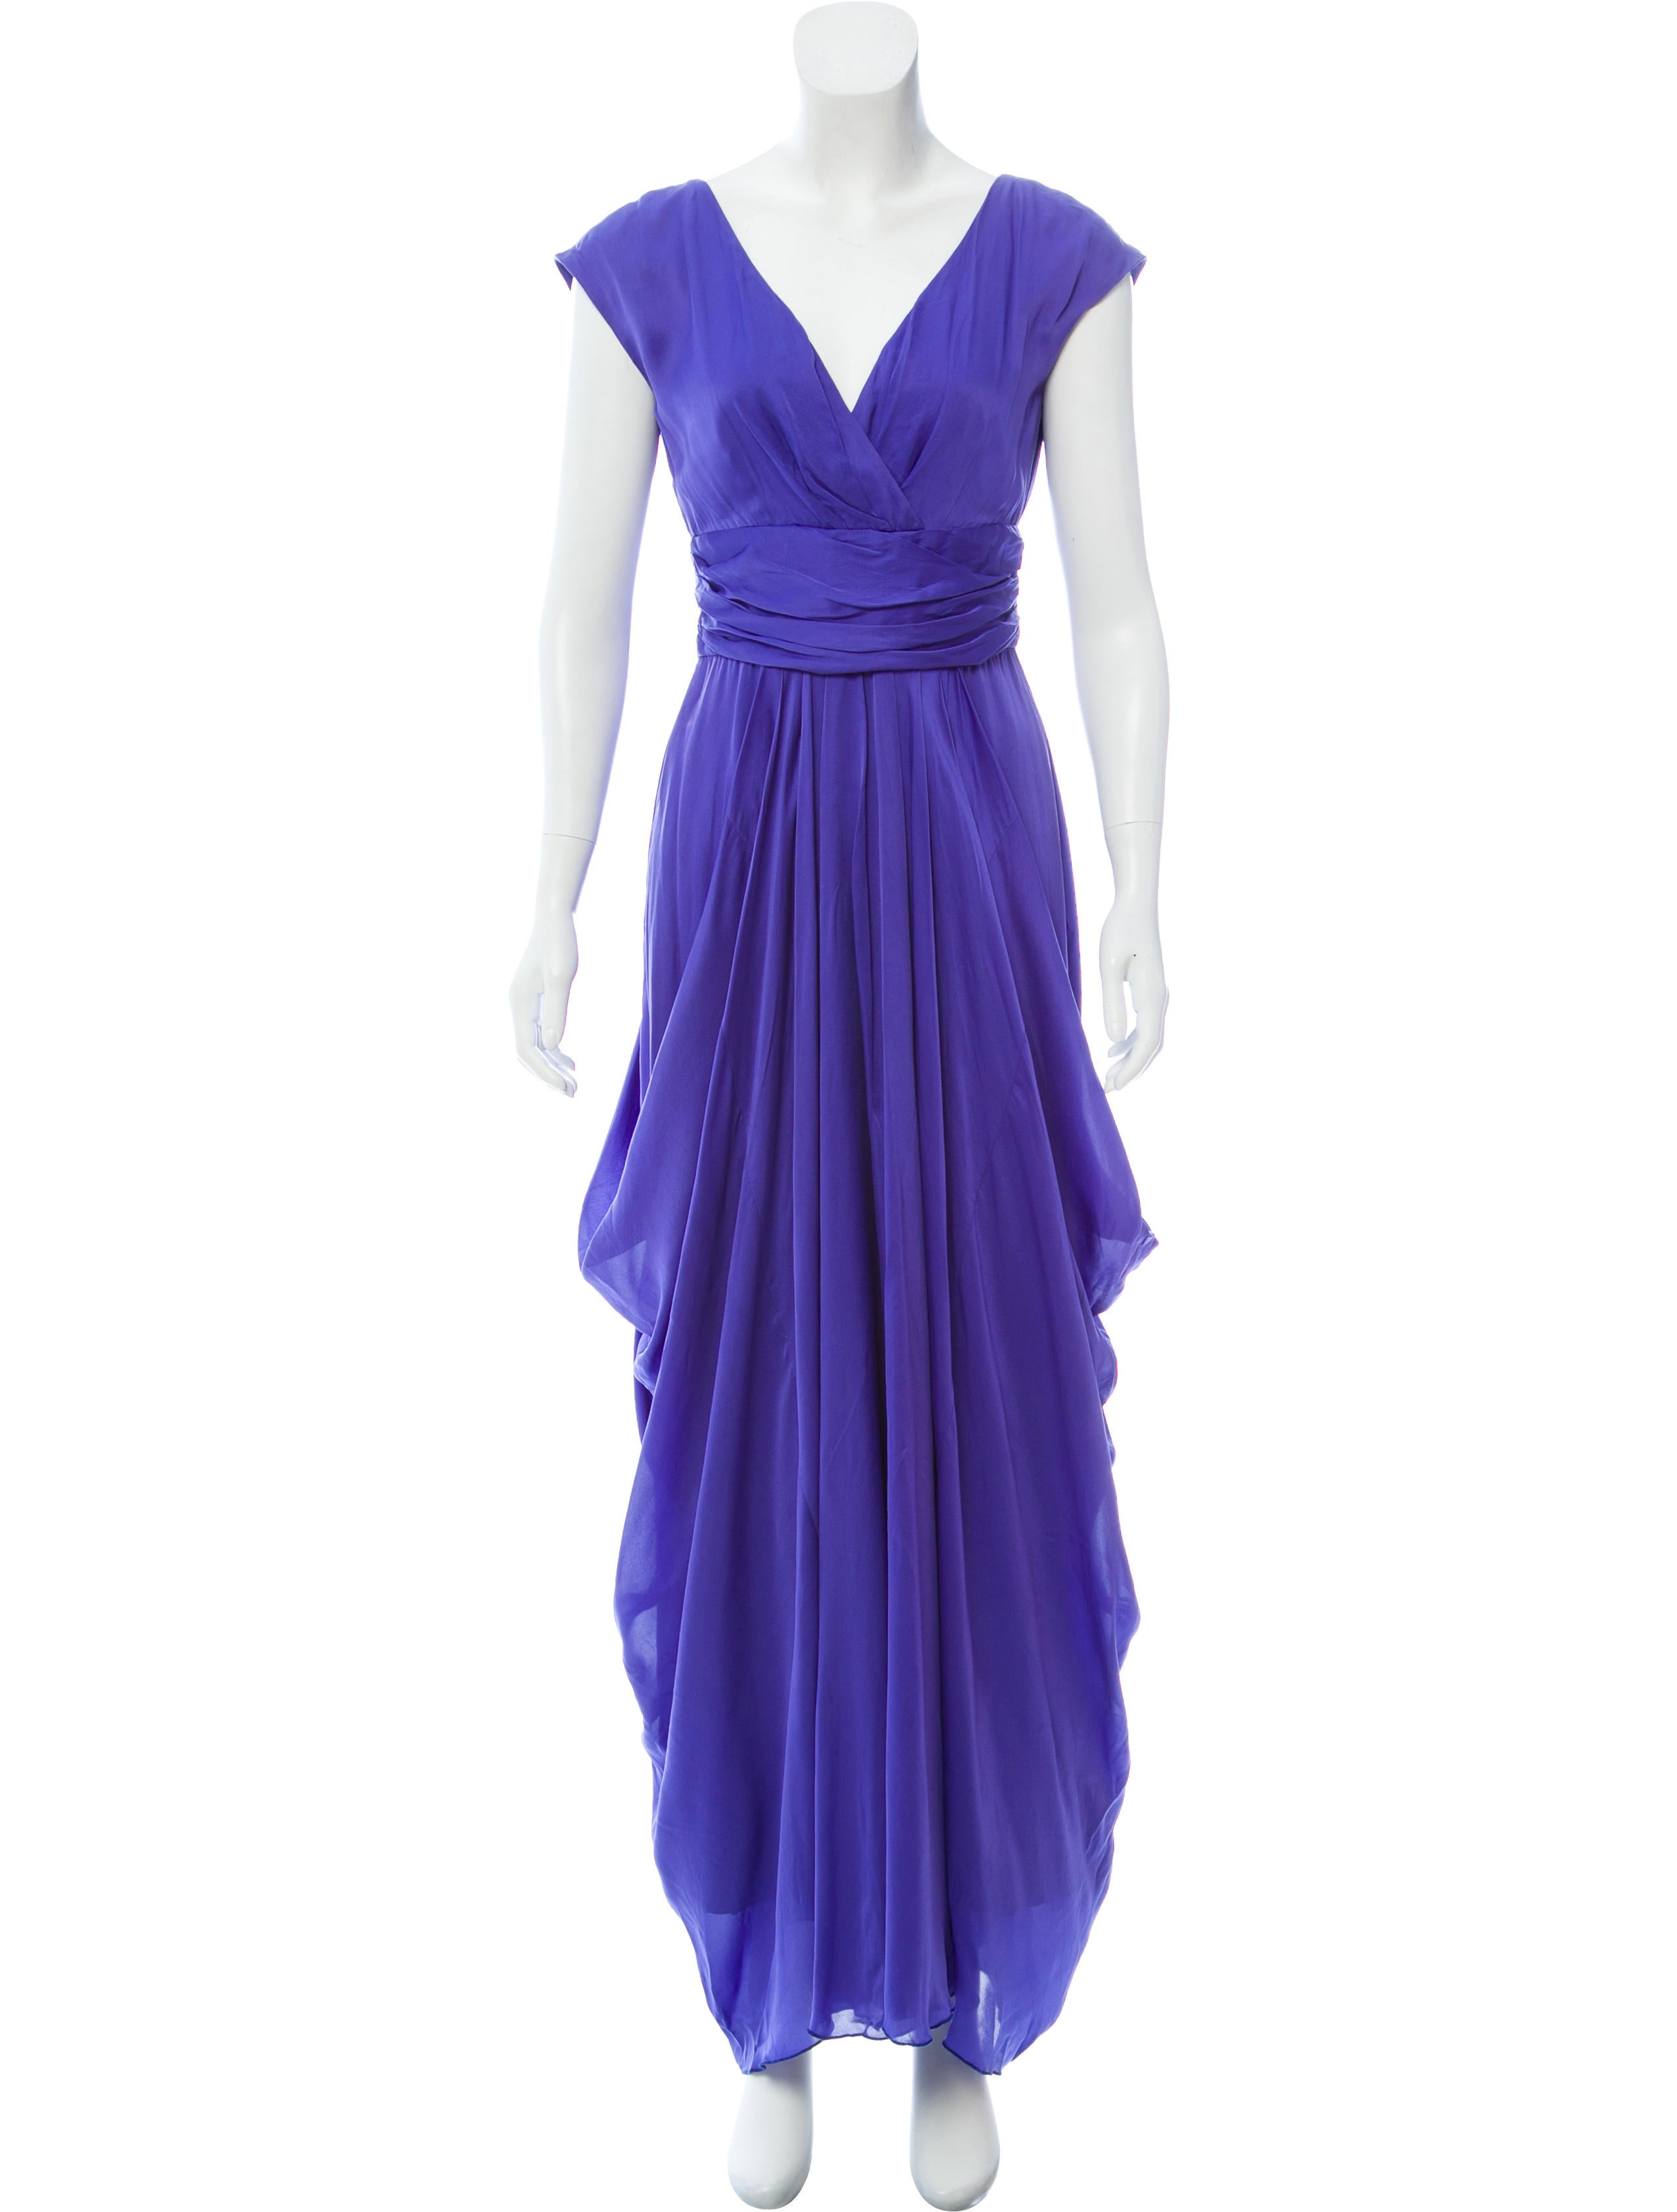 Lela Rose African Violet Draped Gown w/ Tags - Clothing - LEL28508 ...